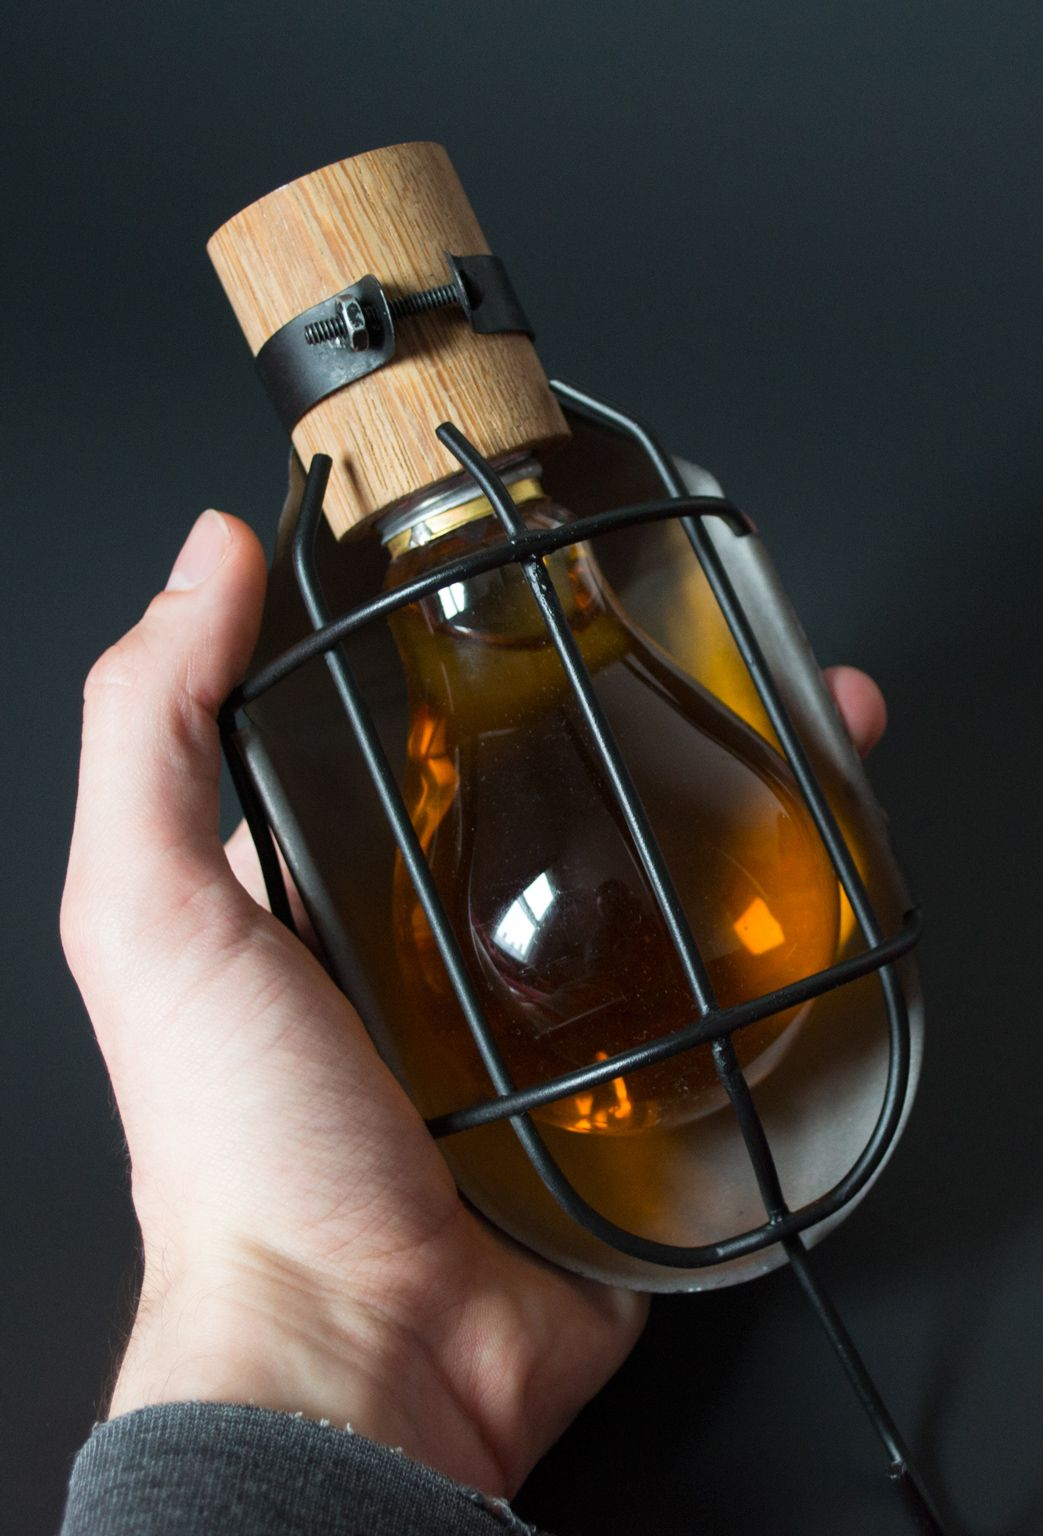 La Planque - Whiskey on Behance